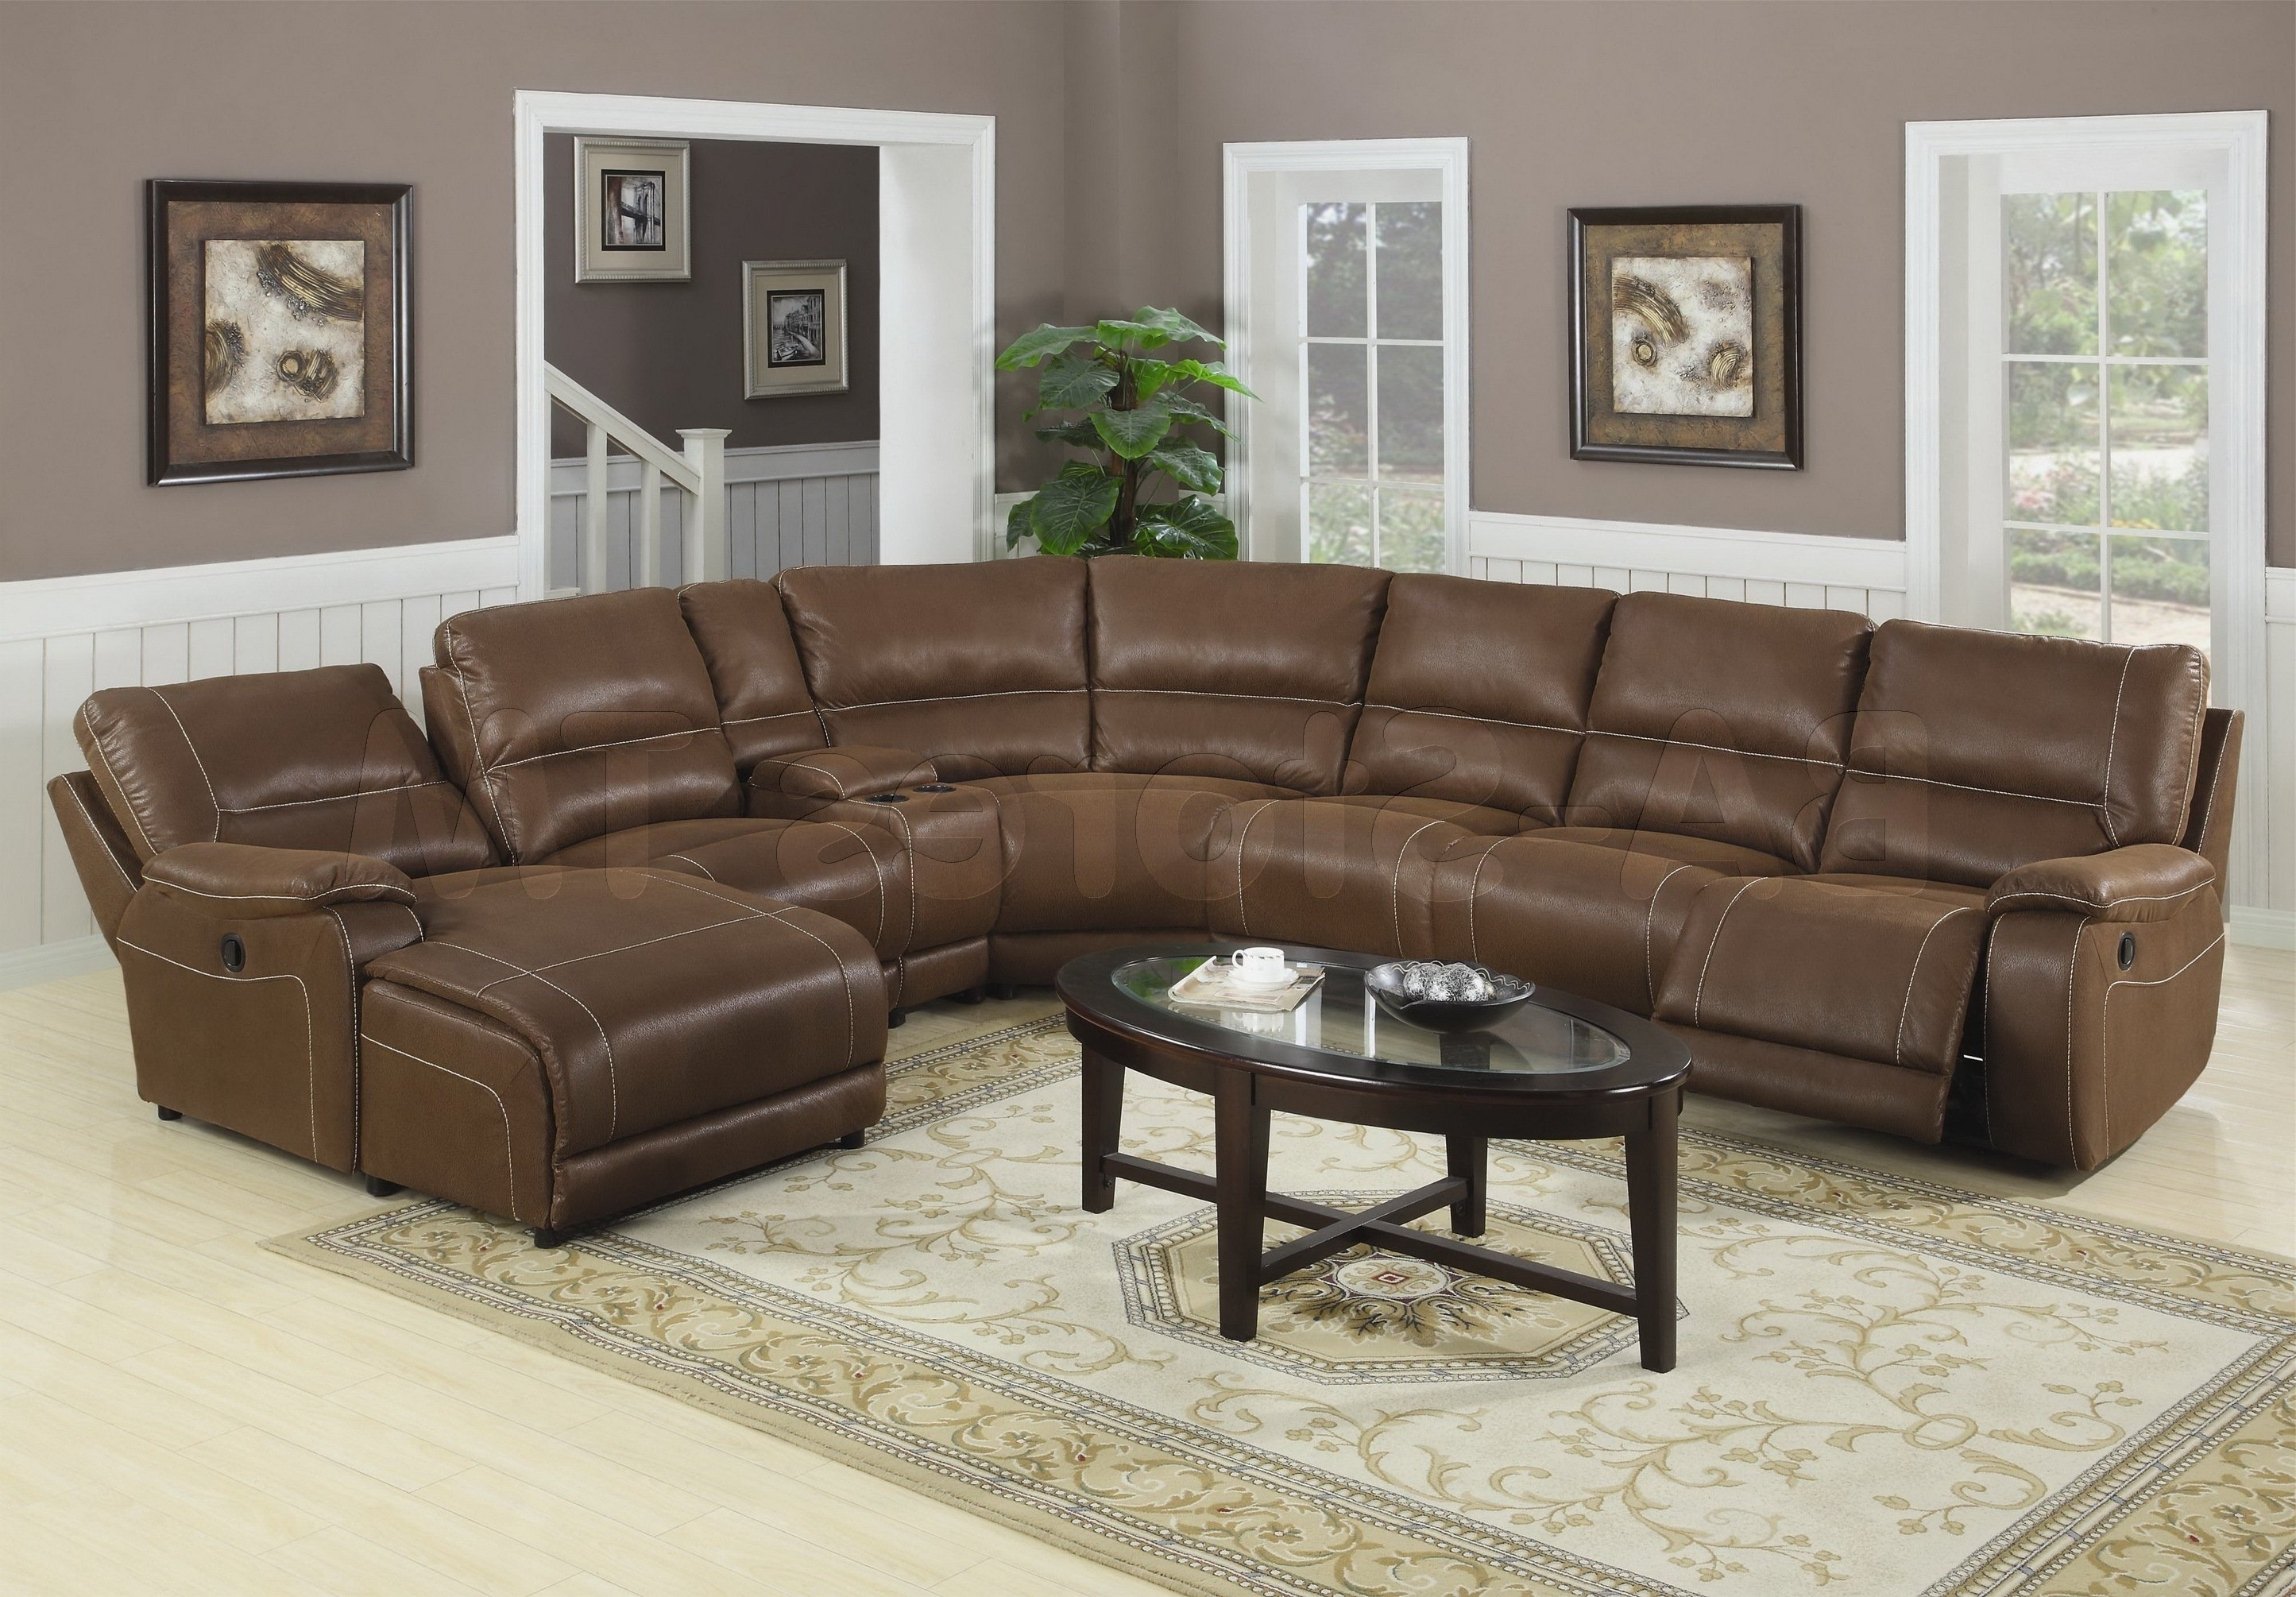 Interior Luxury Oversized Sectional Sofa For Awesome Living Room Within Well Known Large Sectionals With Chaise (View 15 of 15)